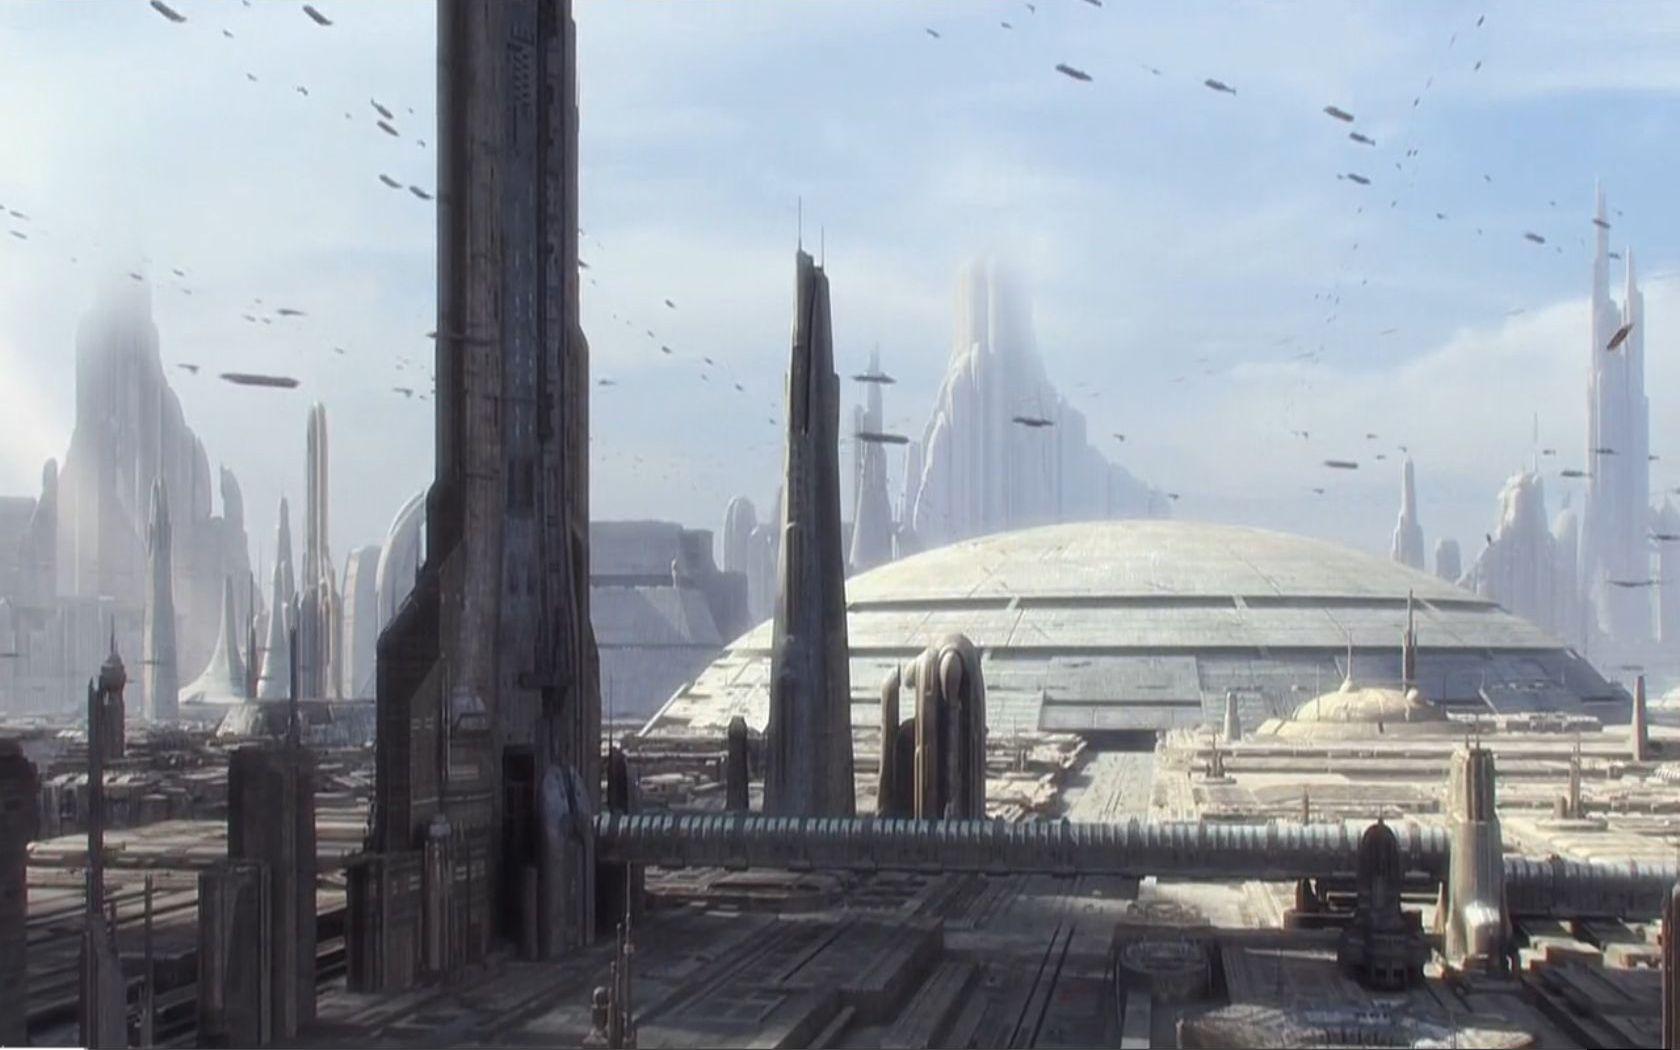 50 Of High Resolution Star Wars Wallpapers Star Wars Wallpaper Star Wars Episode Ii Futuristic City